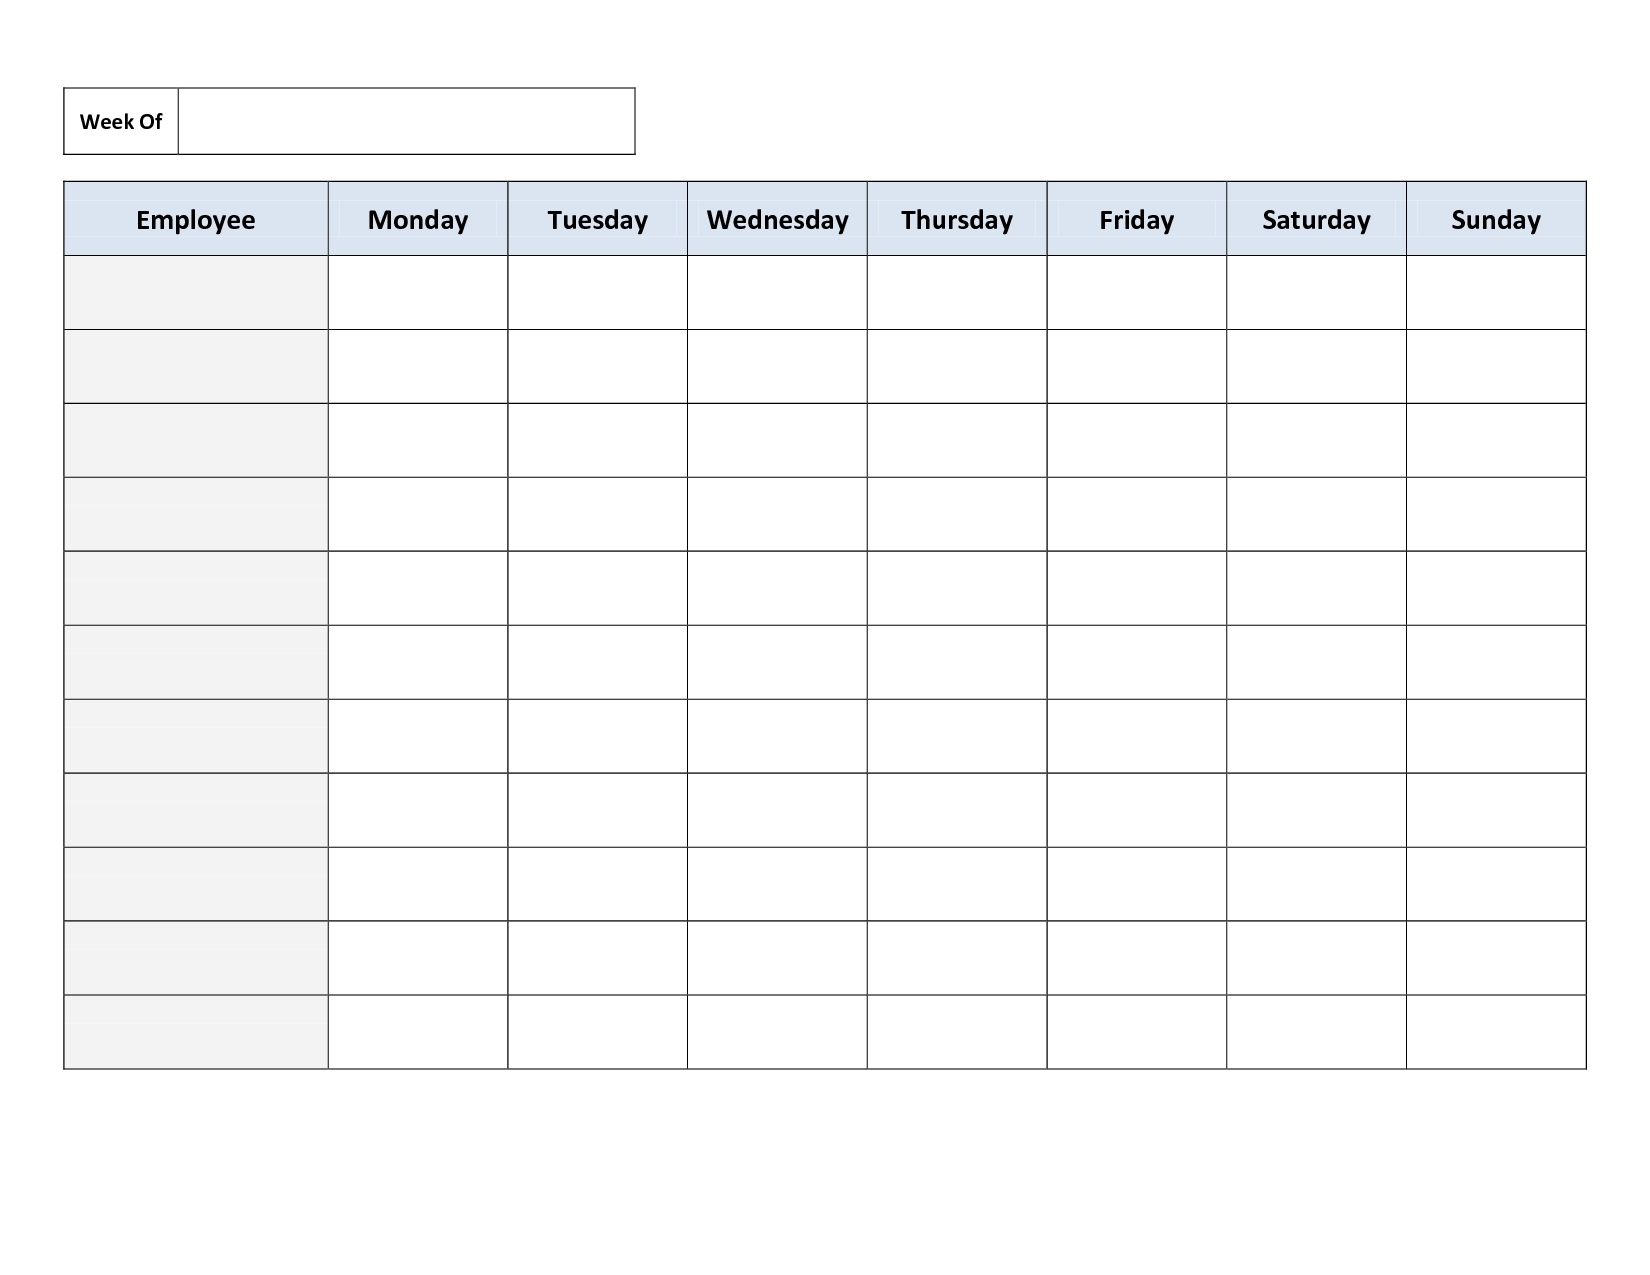 Monday To Friday Timetable Template | Calendar Template Monday To Friday Blank Week Schedule